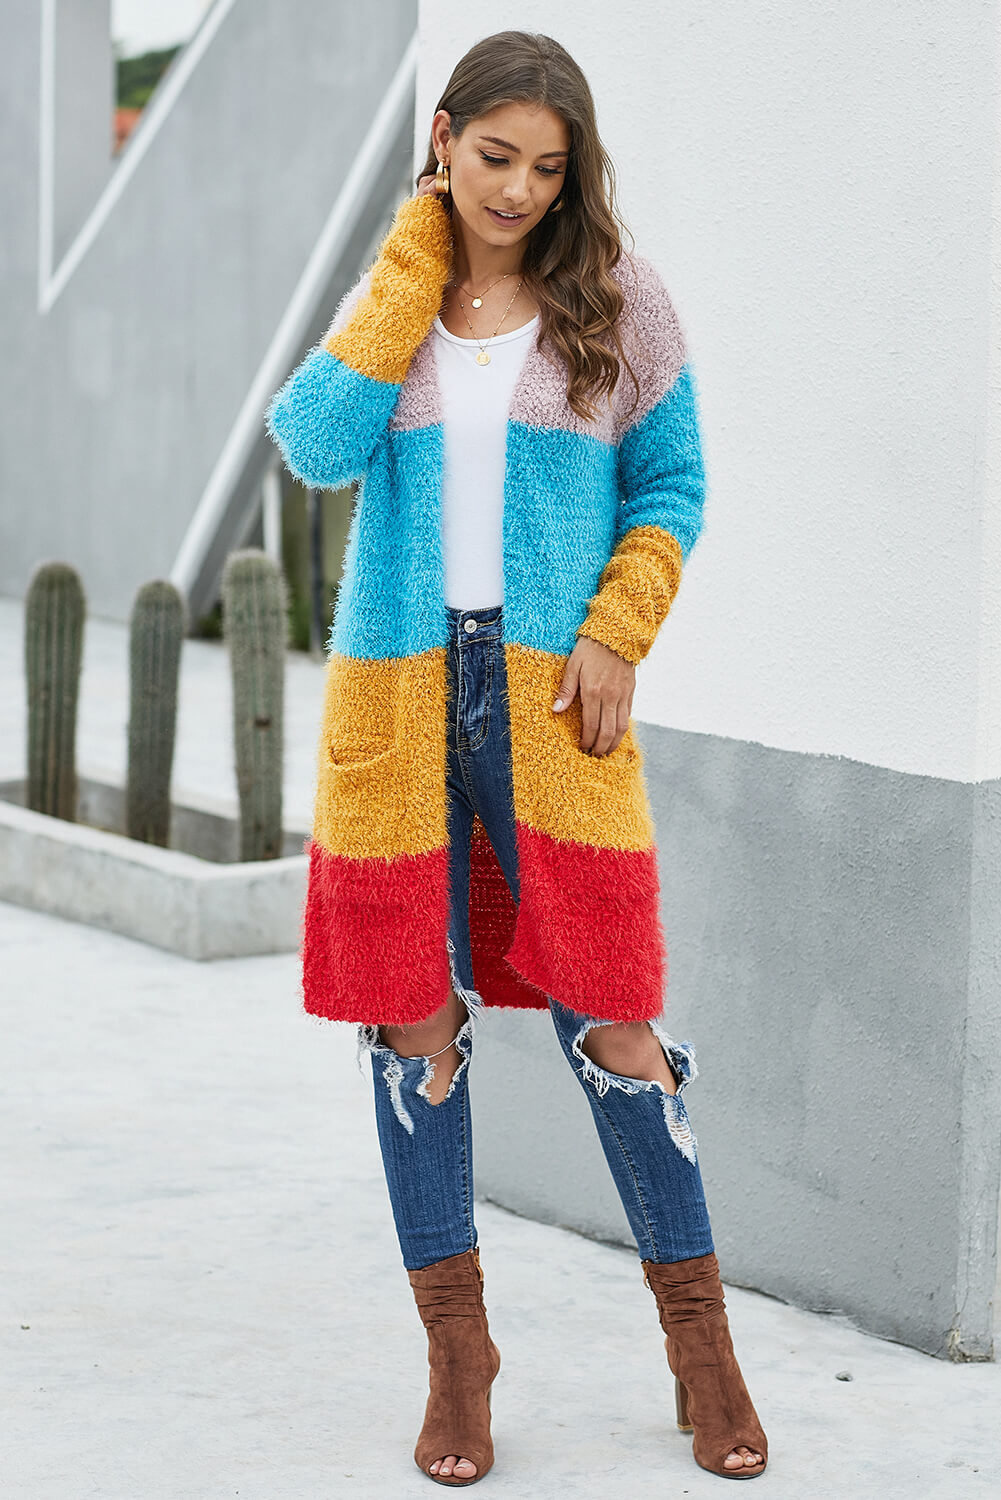 Multicolor Color Block Drape Oversized Knitted Cardigan Sweaters & Cardigans Discount Designer Fashion Clothes Shoes Bags Women Men Kids Children Black Owned Business